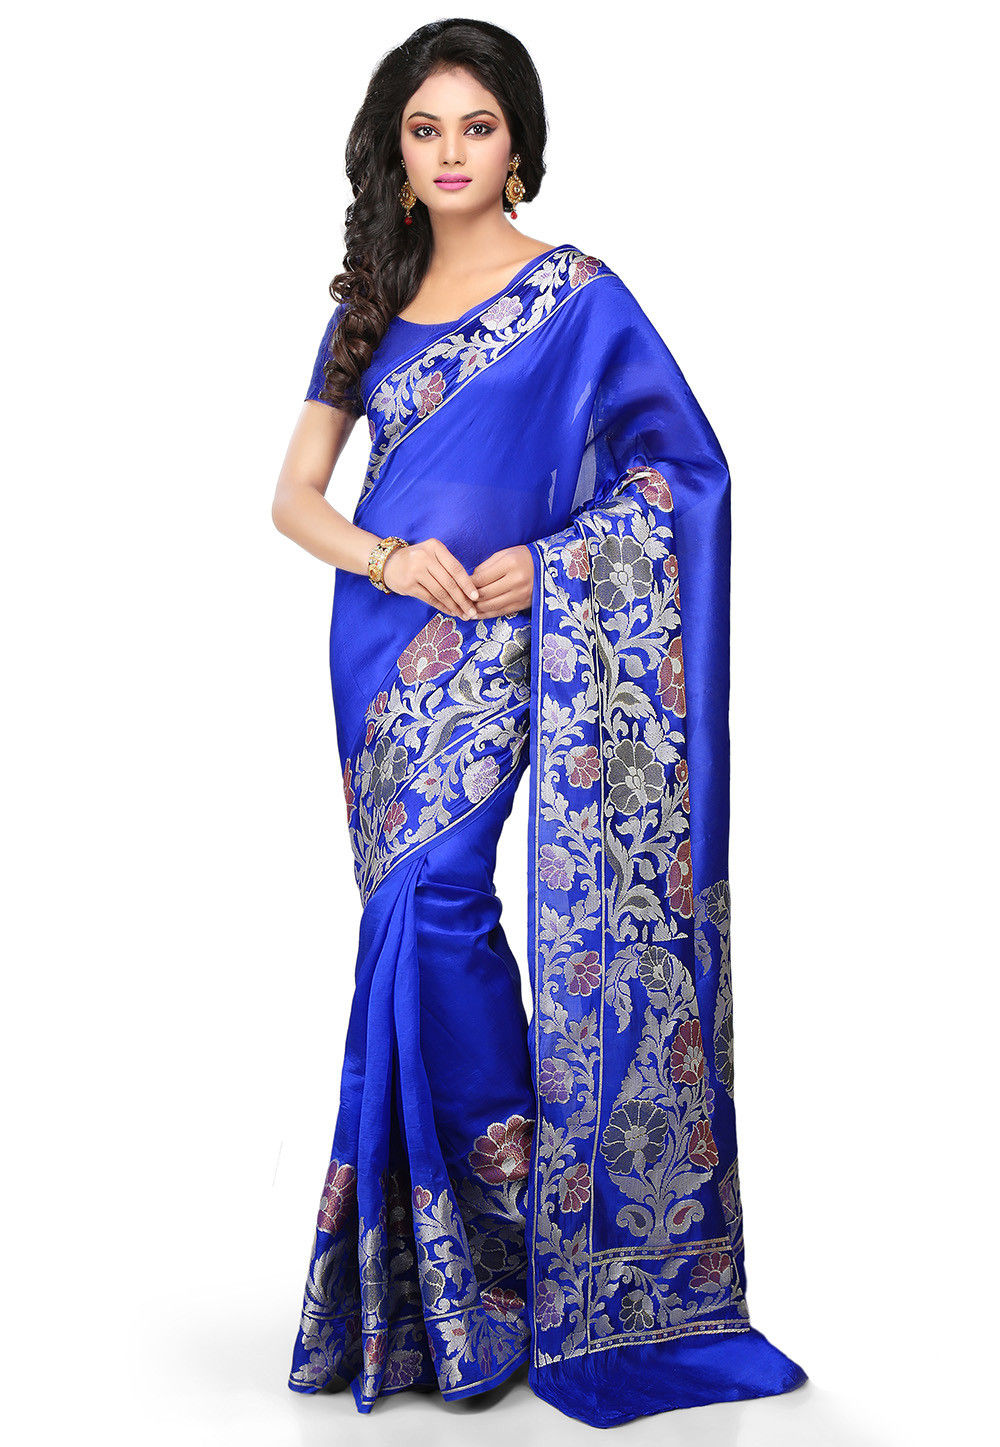 Come to viplikecuatoi.ml We would love to pamper your wallet with reasonably priced Sarees, Salwar Suits, Lehenga Cholis and Jewelry from India. We would love to pamper your wallet with reasonably priced Sarees, Salwar Suits, Lehenga Cholis and Jewelry from India.